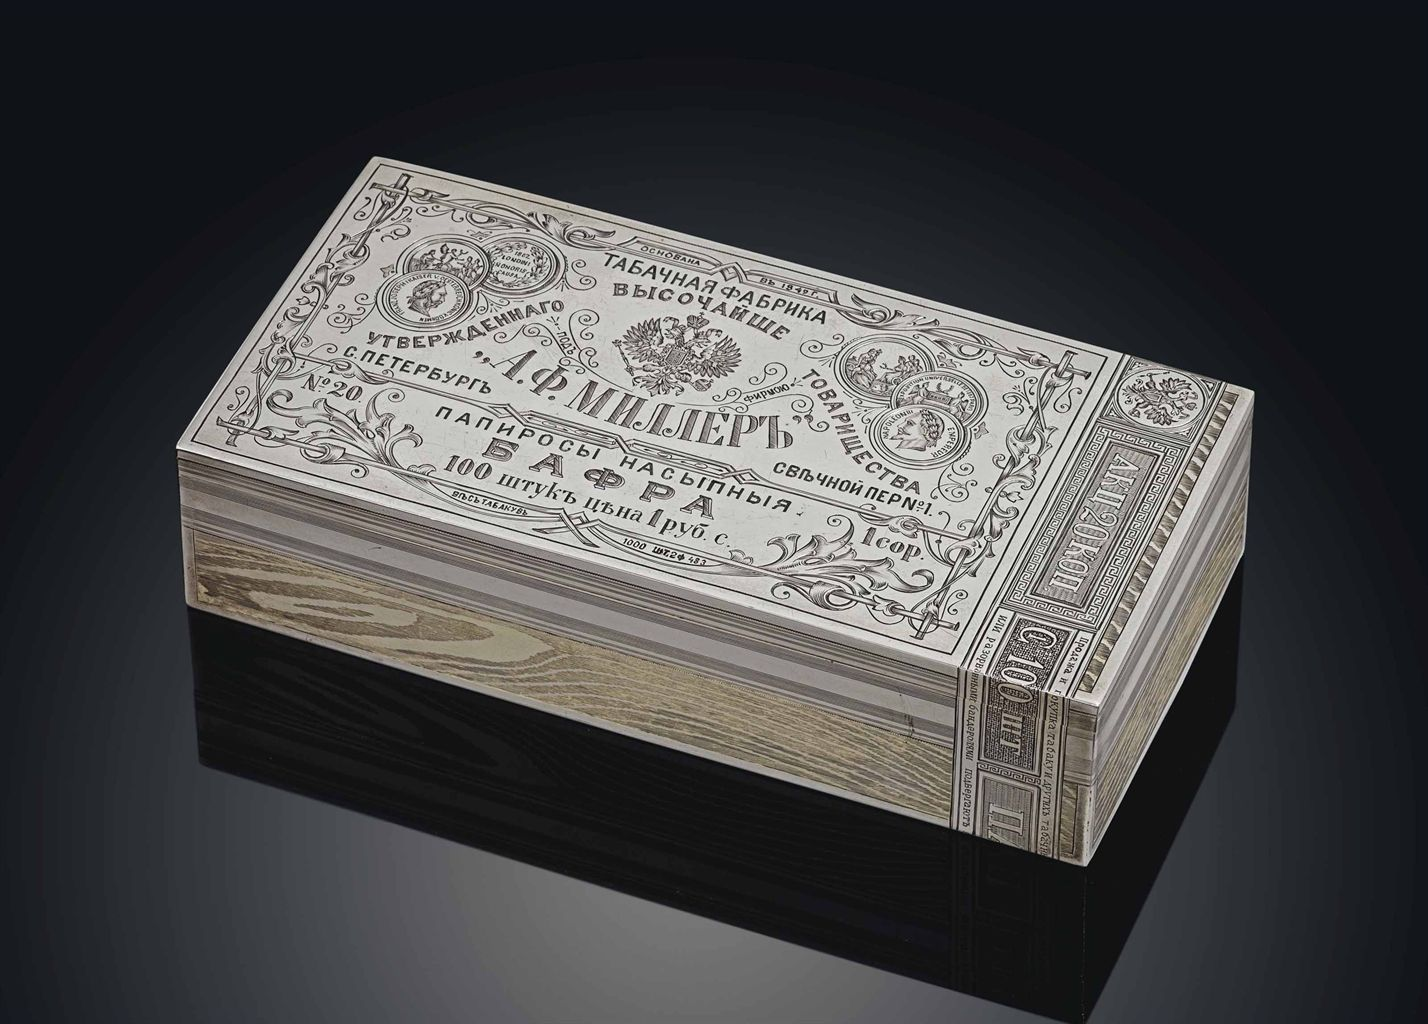 A PARCEL-GILT SILVER TROMPE L'OEIL LARGE CIGARETTE BOX MAKER'S MARK CYRILLIC 'FEE', ST PETERSBURG, 1891